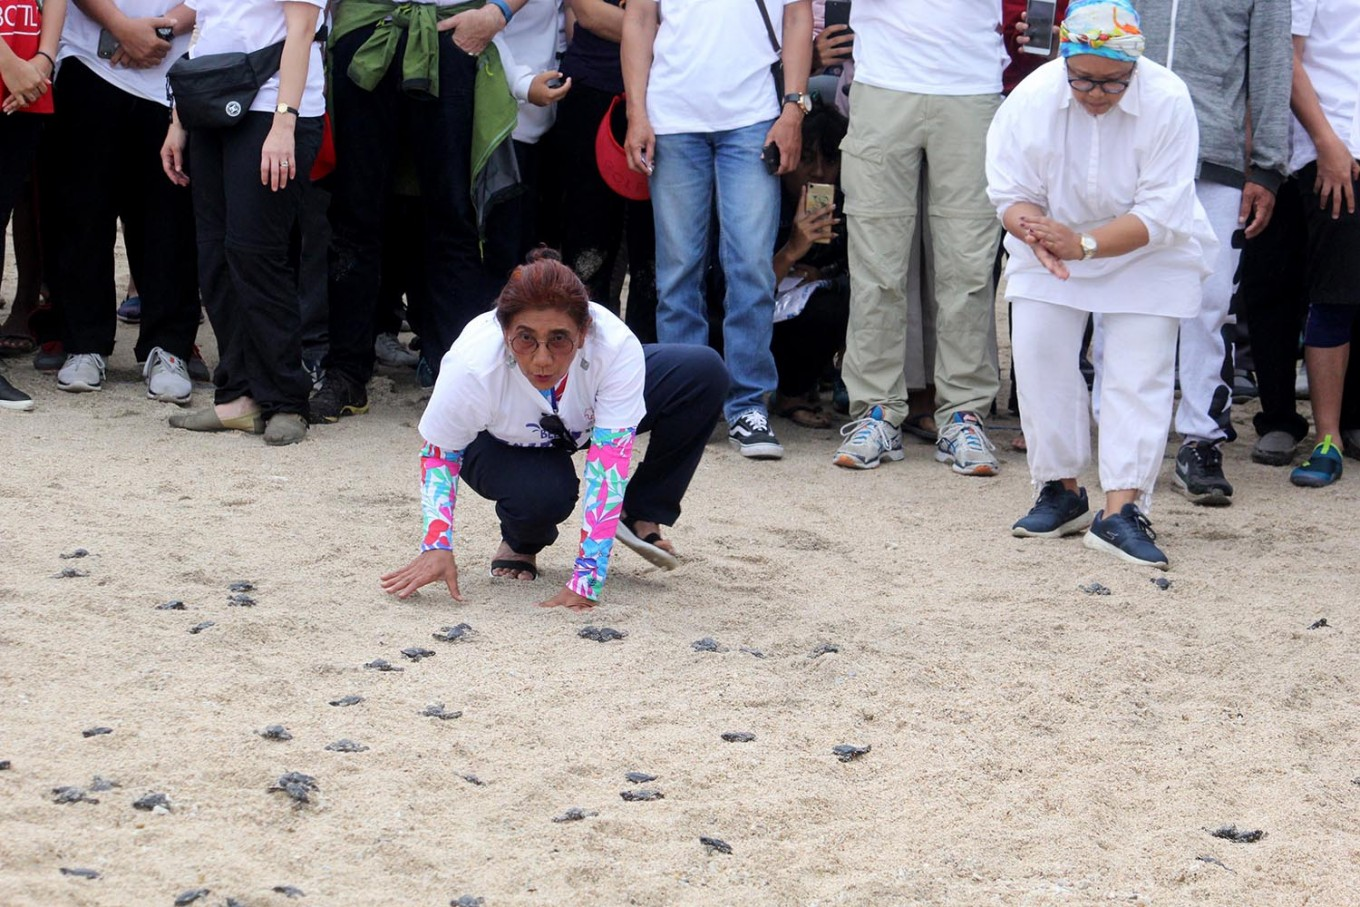 Maritime Affairs and Fisheries Minister Susi Pudjiastuti (left) and Foreign Minister Retno LP Marsudi release turtle hatchlings as part of a conservation campaign on Kuta Beach during the Our Ocean Conference in Bali on Sunday, October 28, 2018. JP/Zul Trio Anggono